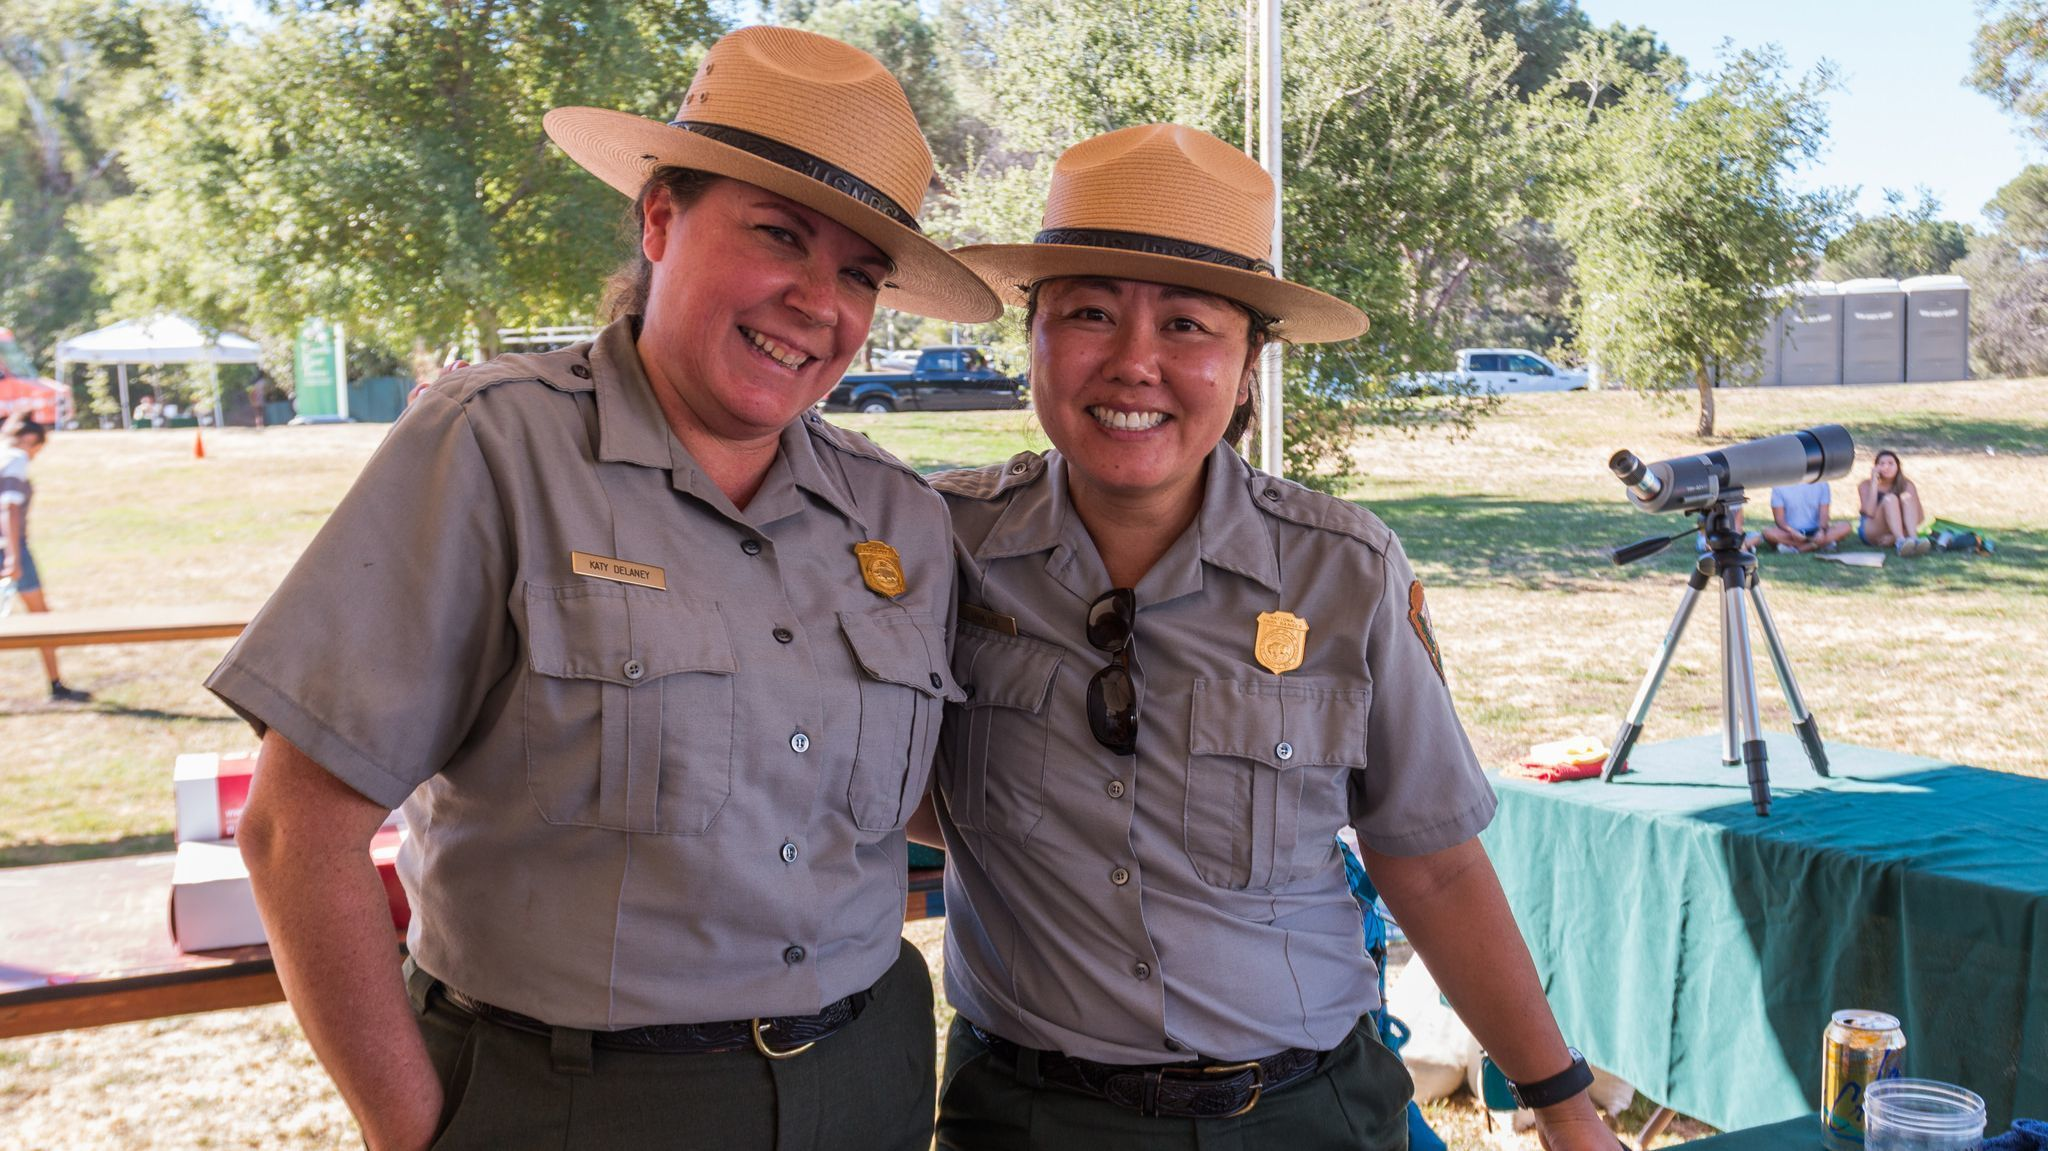 National Park Service rangers